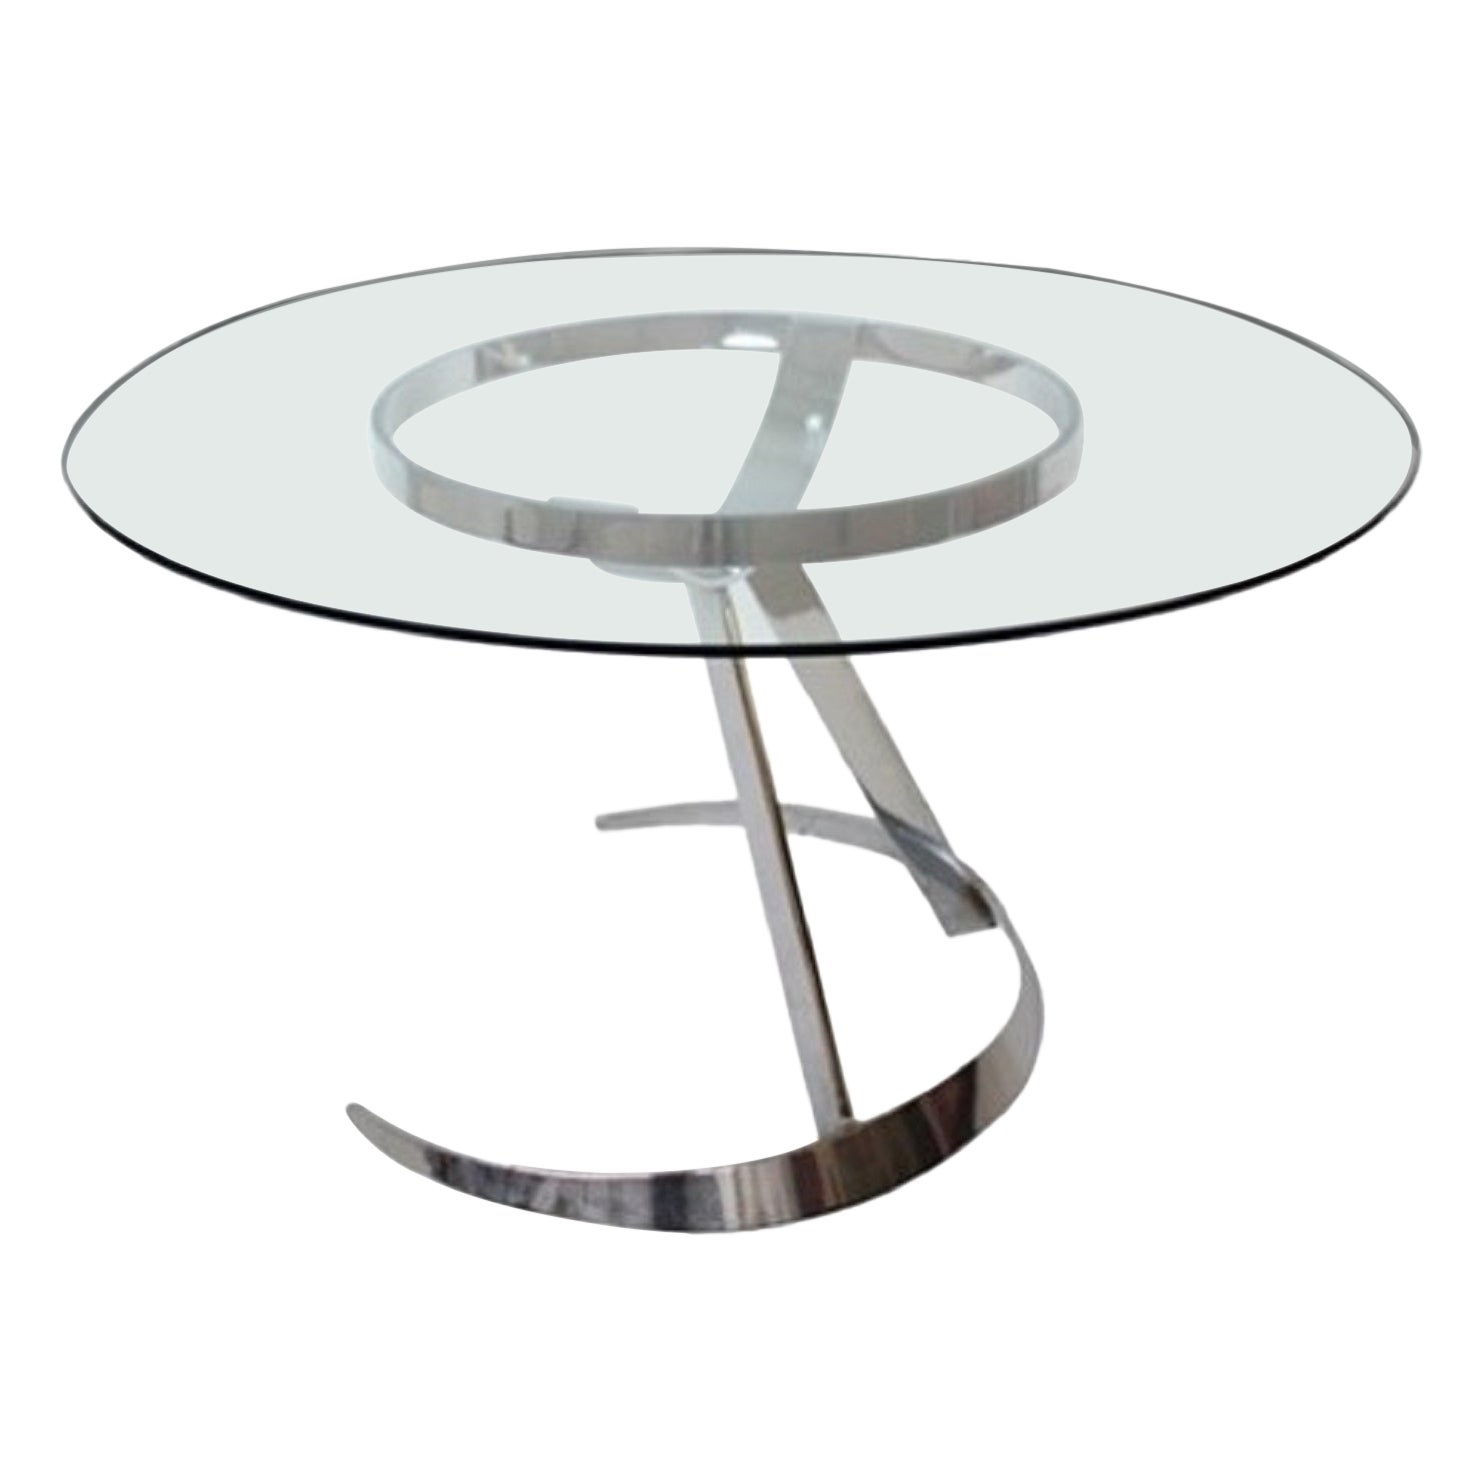 Space Age Model Scimitar Dining Table by Boris Tabacoff